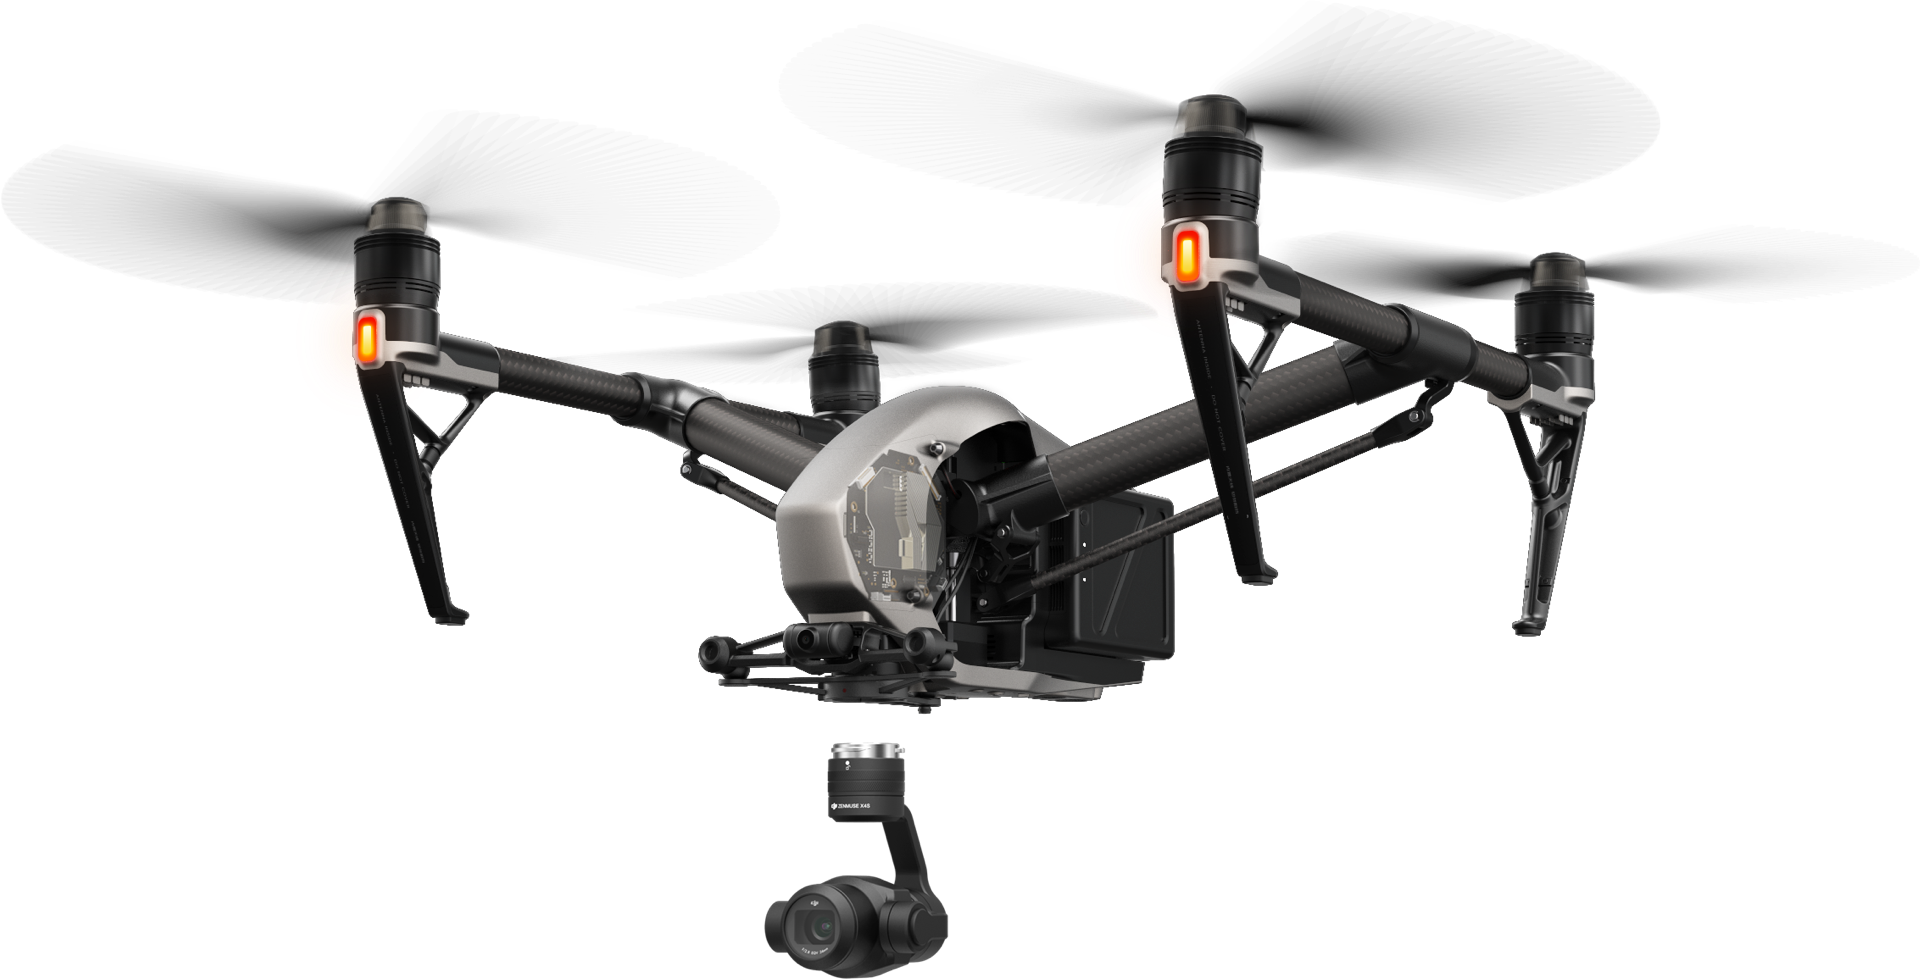 The Inspire 2 Flying Camera